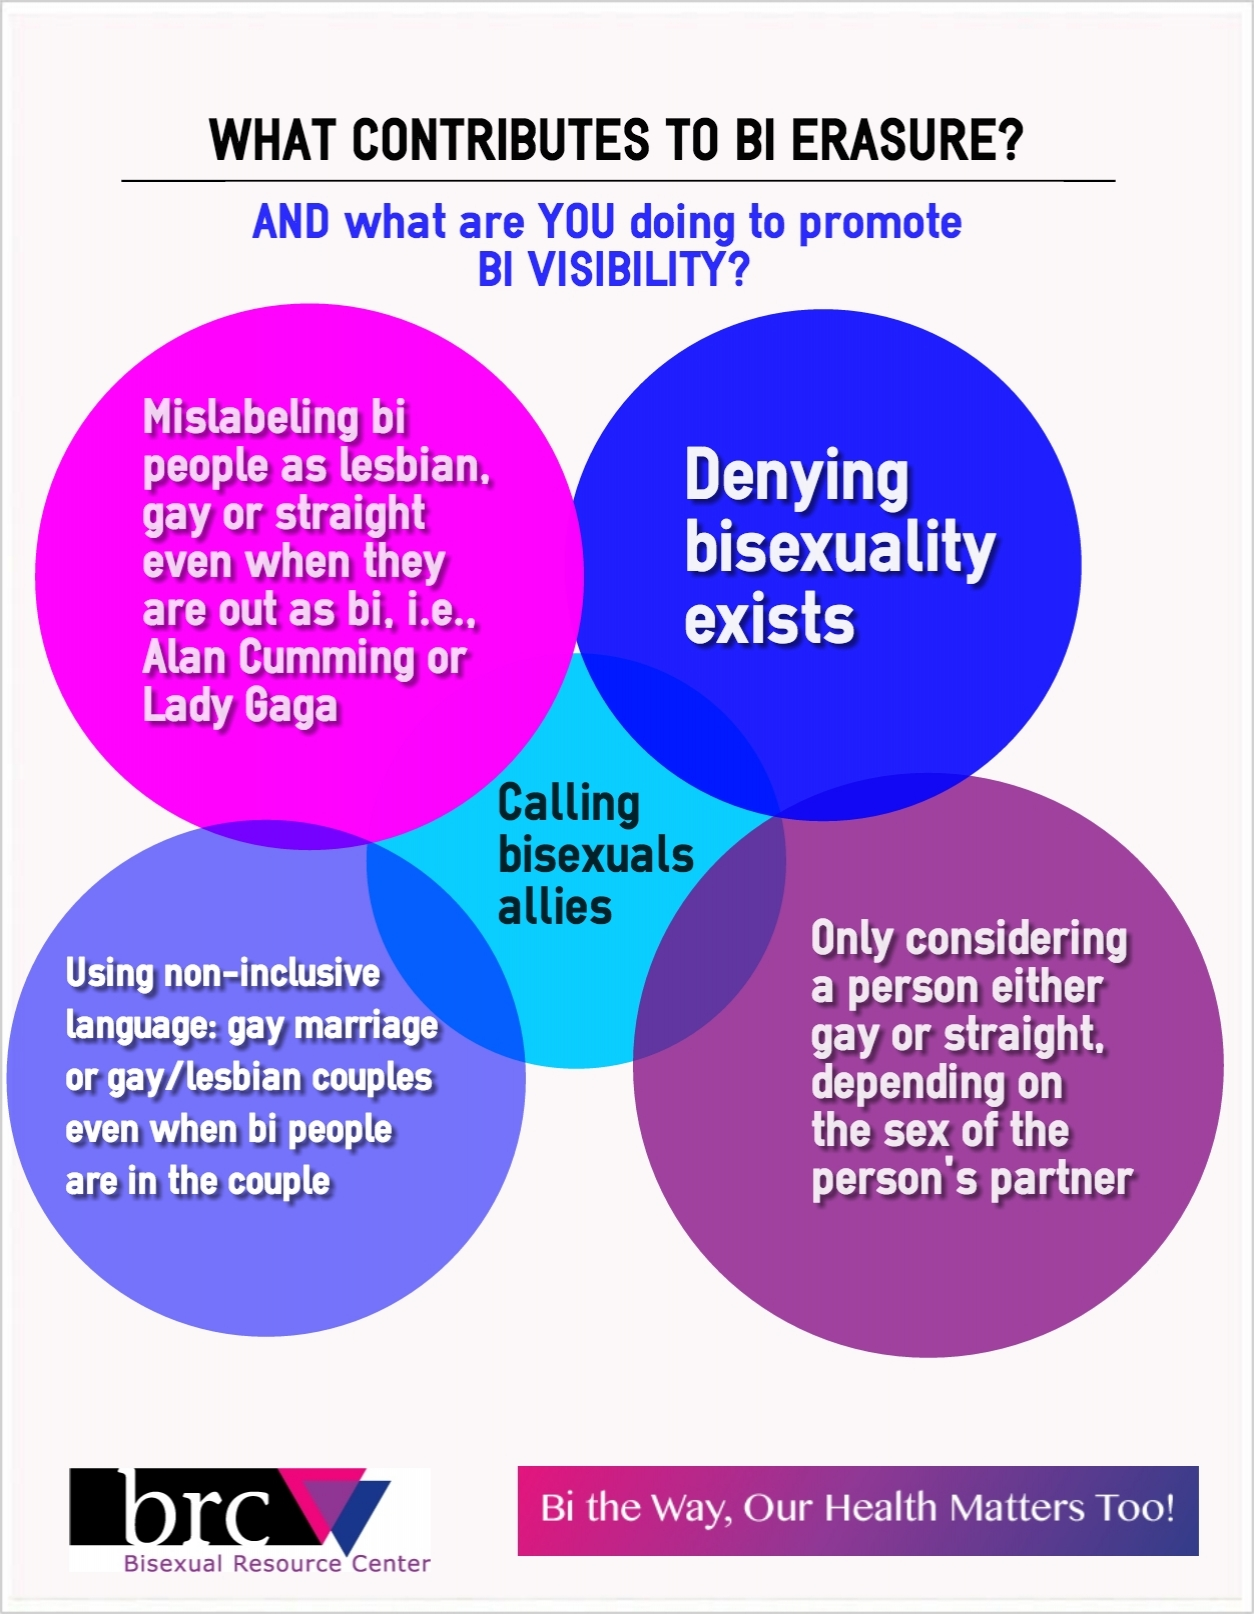 Bi Erasure: What contributes? What do you do to promote visibility? Bisexual Resource Center